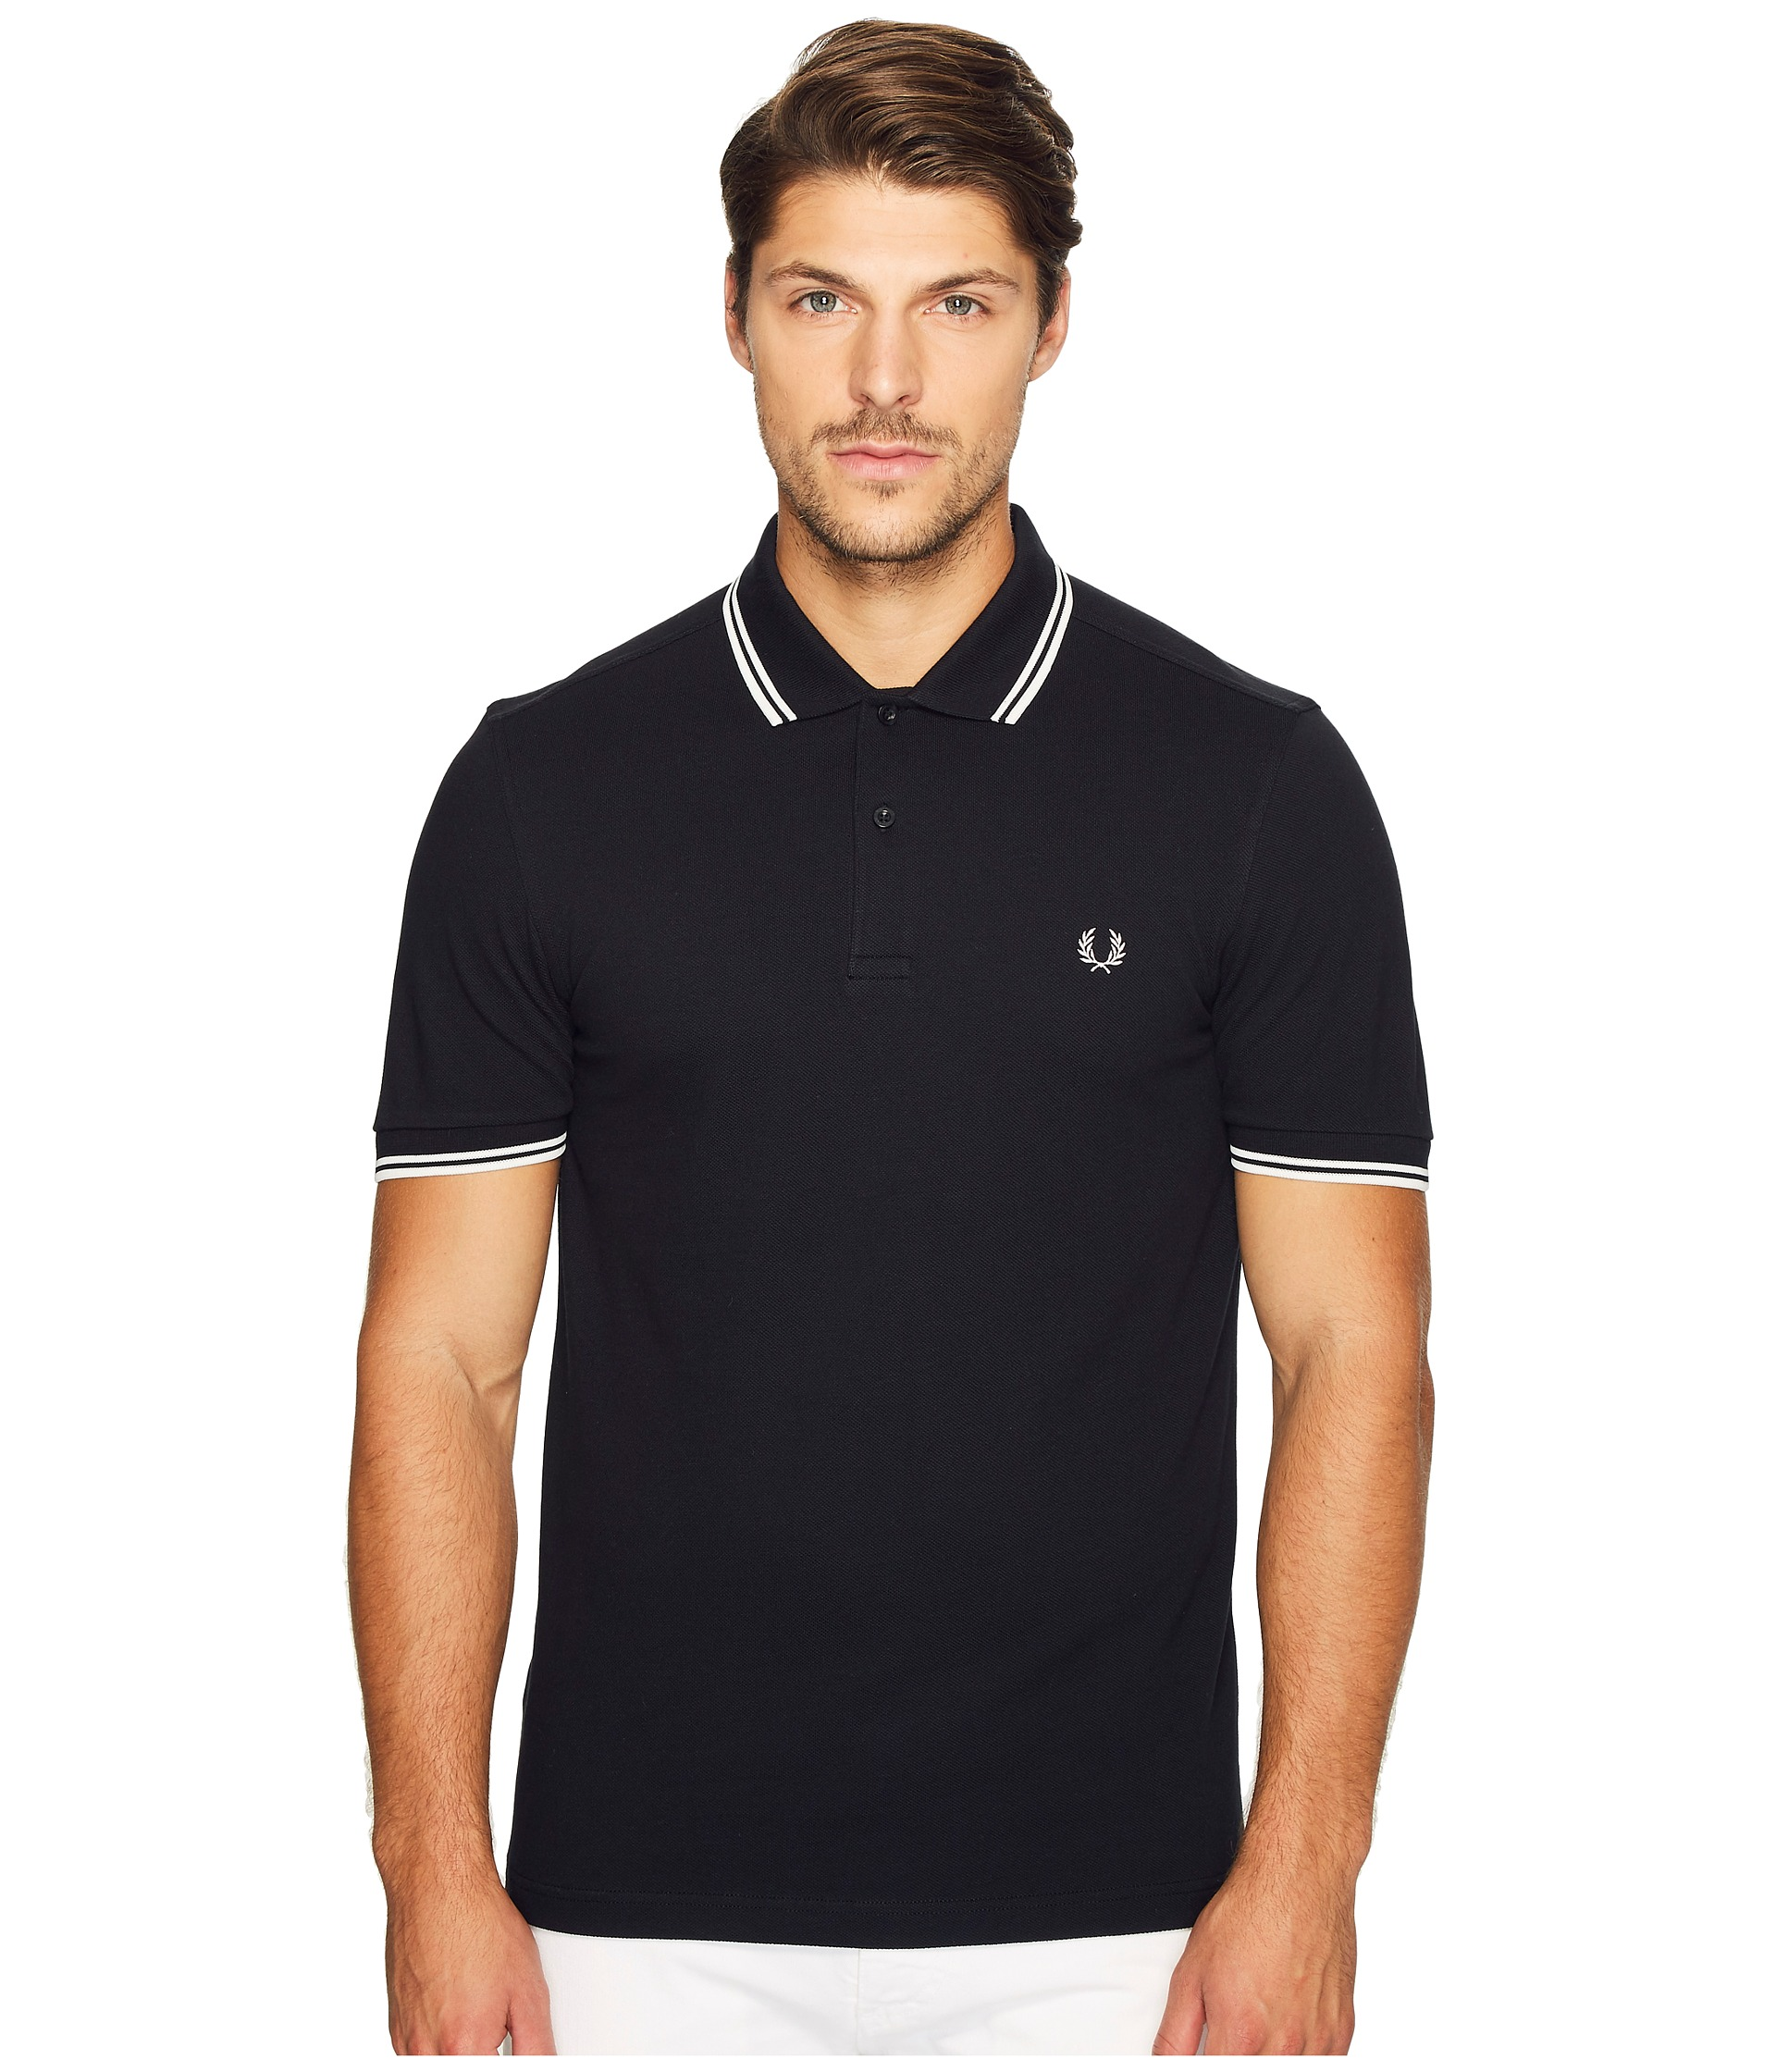 fred perry slim fit twin tipped fred perry polo black porcelain free shipping both ways. Black Bedroom Furniture Sets. Home Design Ideas